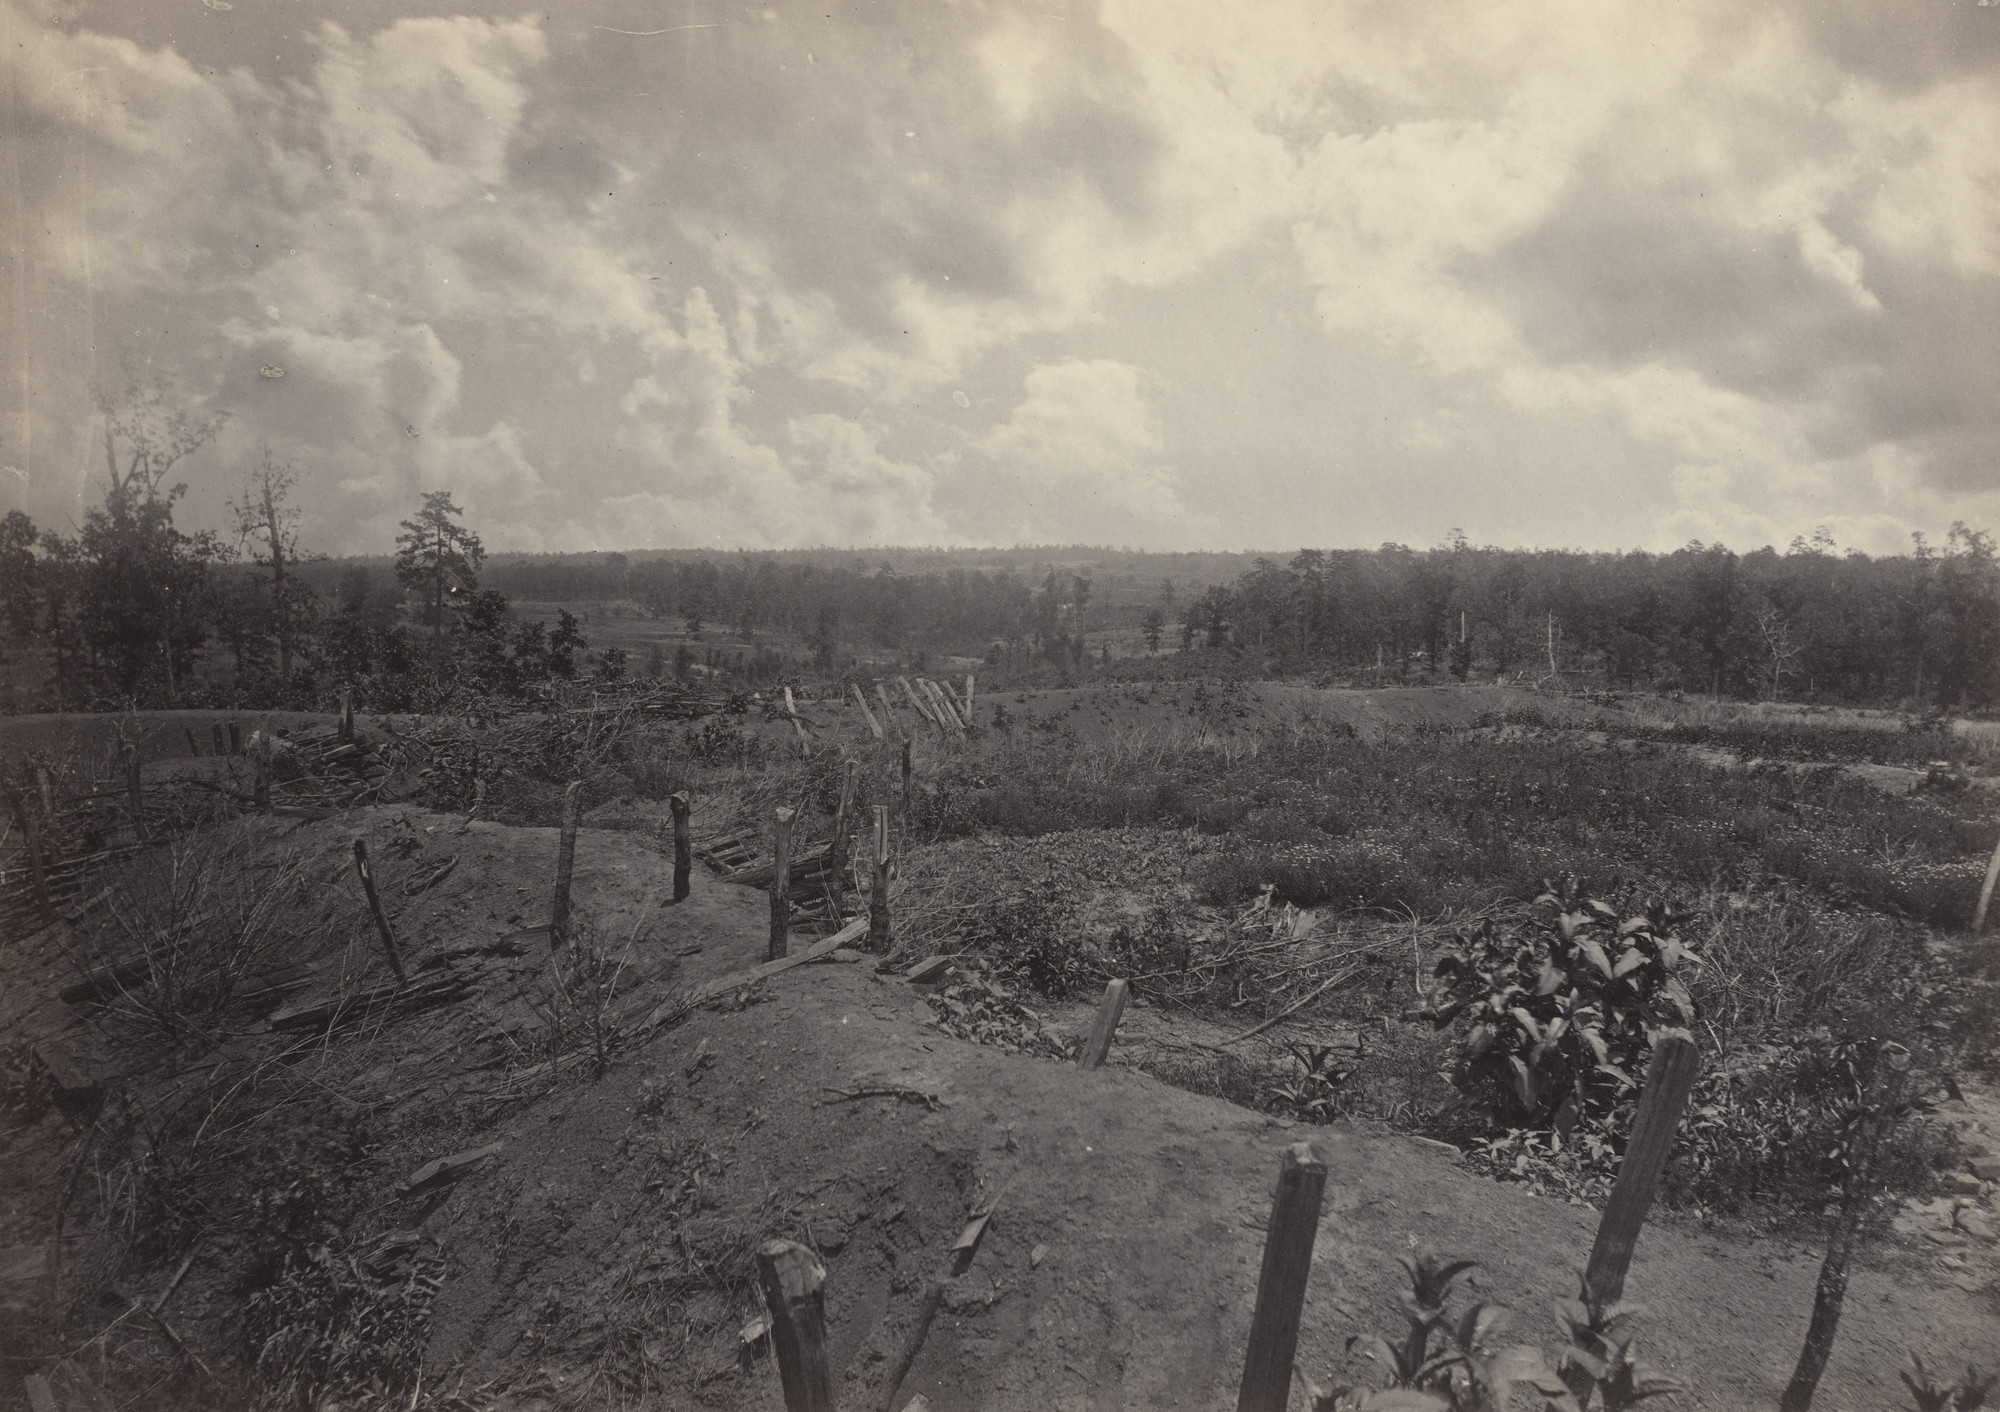 George Barnard. Battlefield of Atlanta, 22nd July, 1864, No. 2 from the album Photographic Views of Sherman's Campaign. 1864